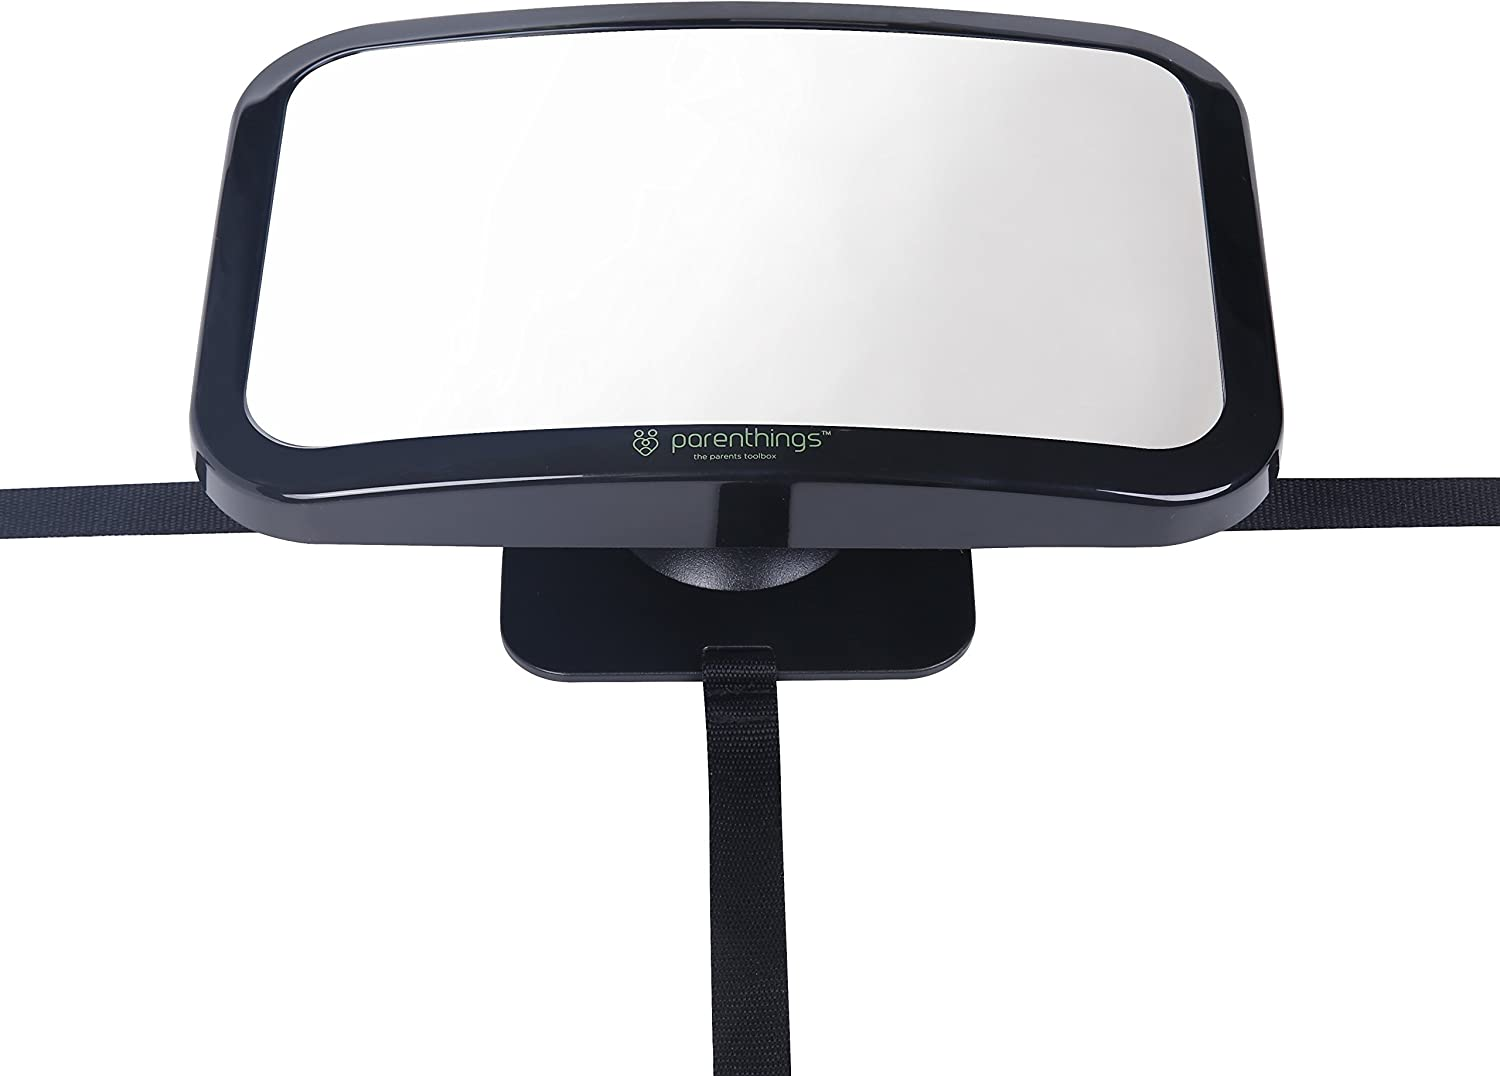 Parenthings Baby Car Mirror for Back Seat Rear View Monitor-Super Clear Wide View with Acrylic 360/° Rotatable Pivot-100/% Shatterproof and Stable-Universal Fit Classic Black